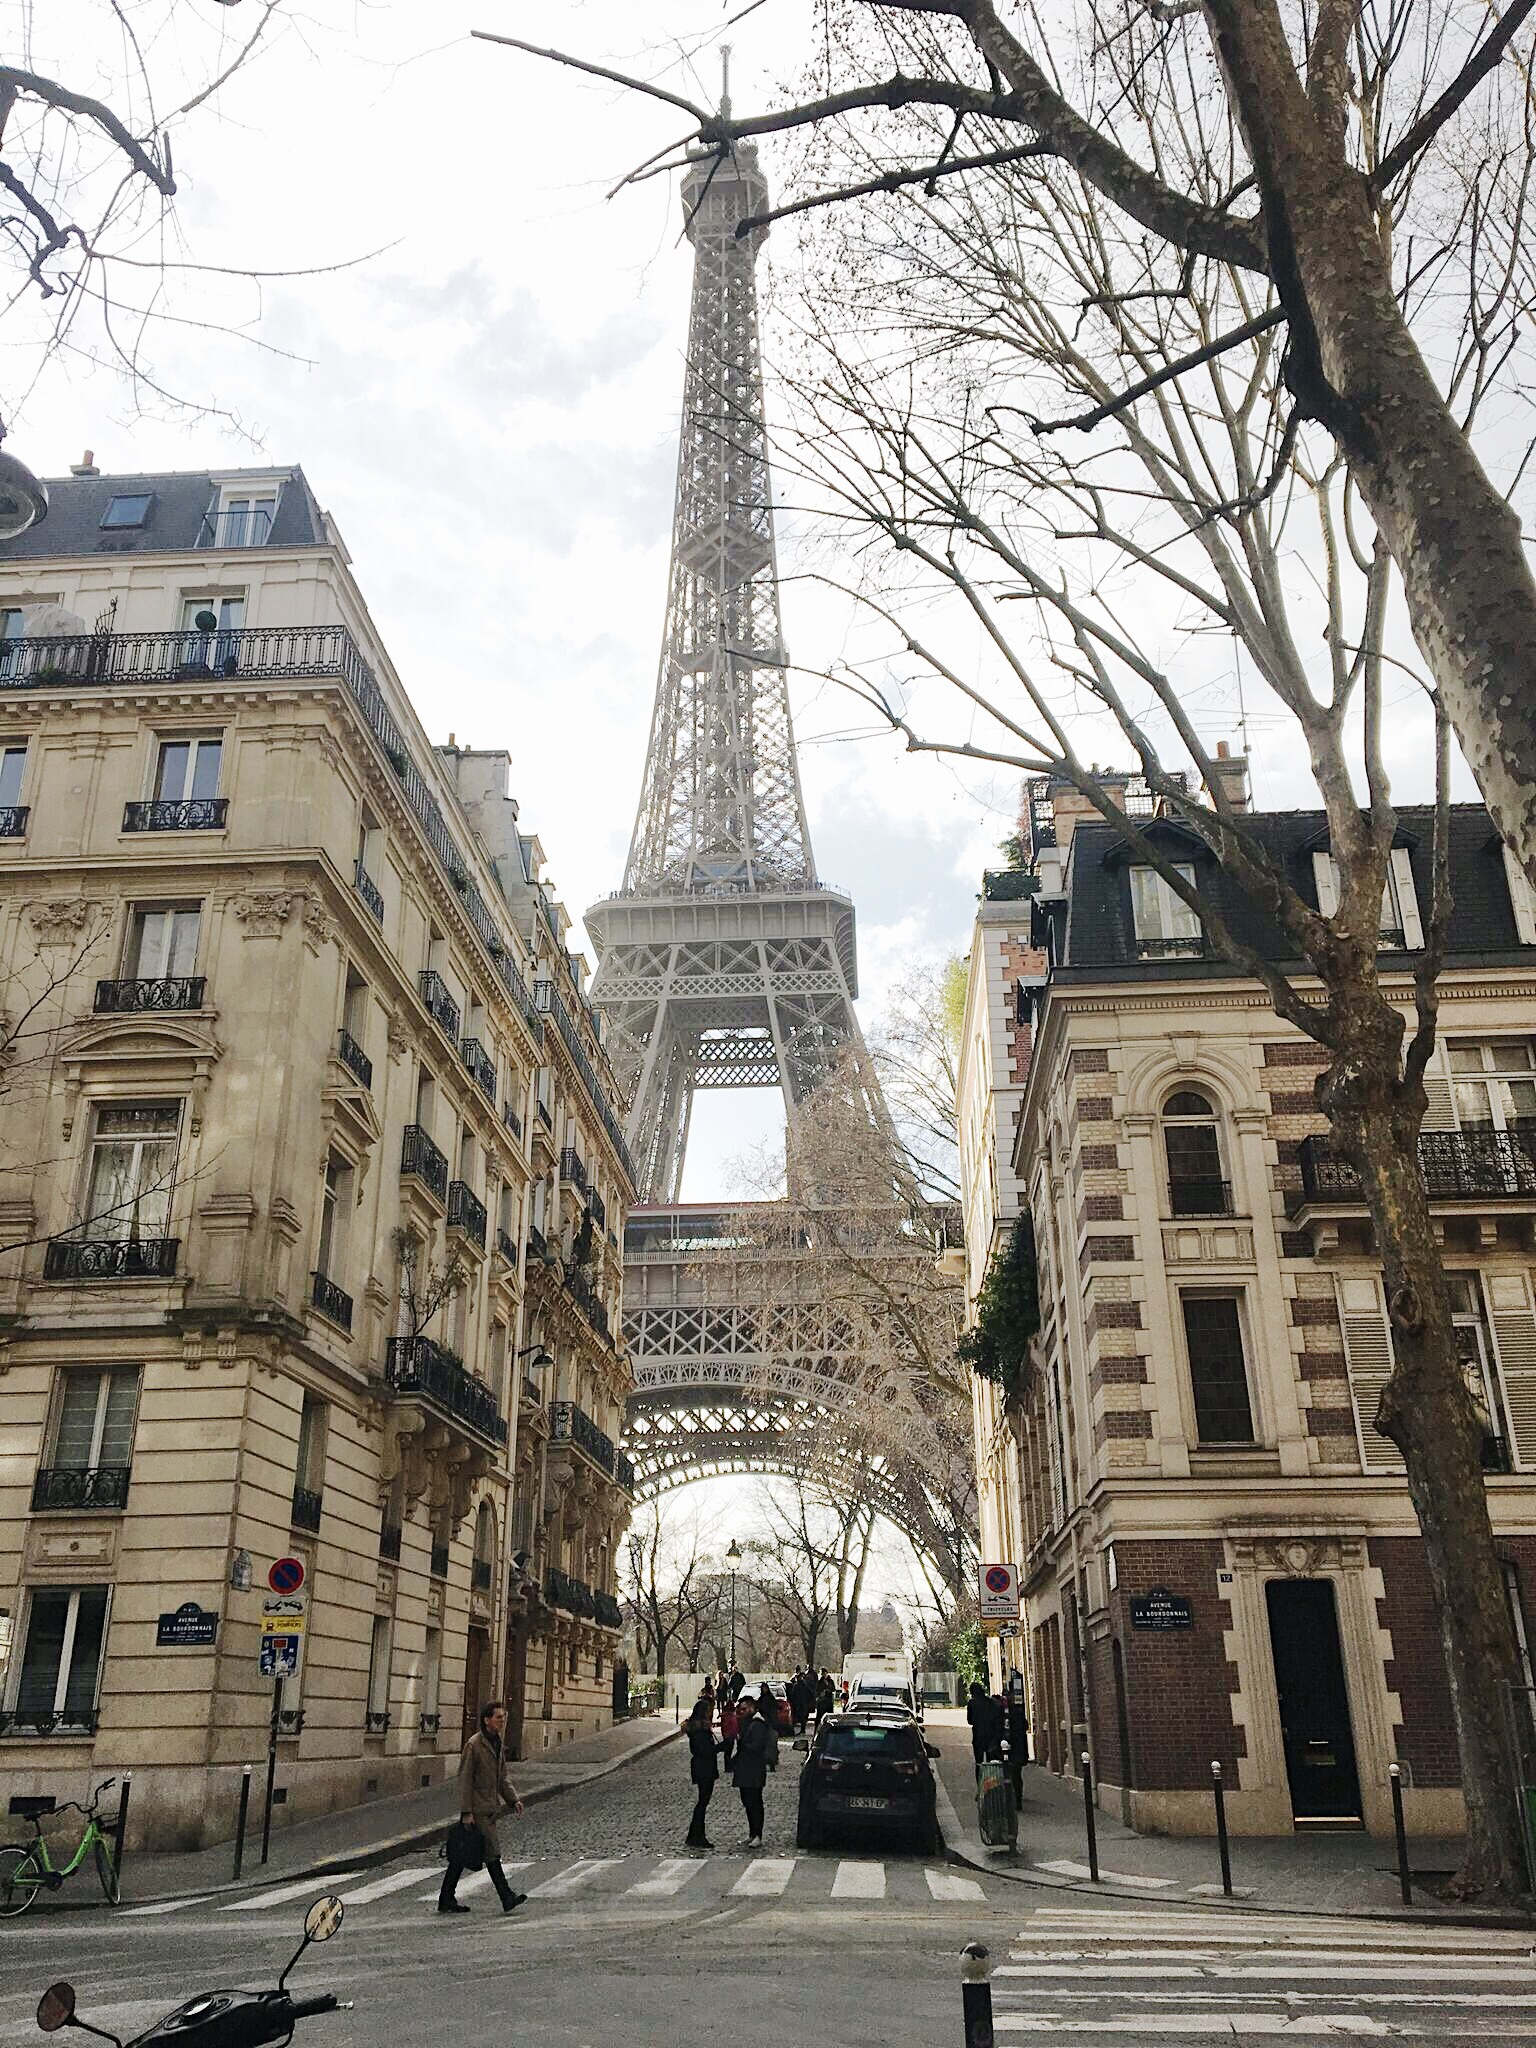 A photo Annie snapped of the breathtaking Eiffel Tower!